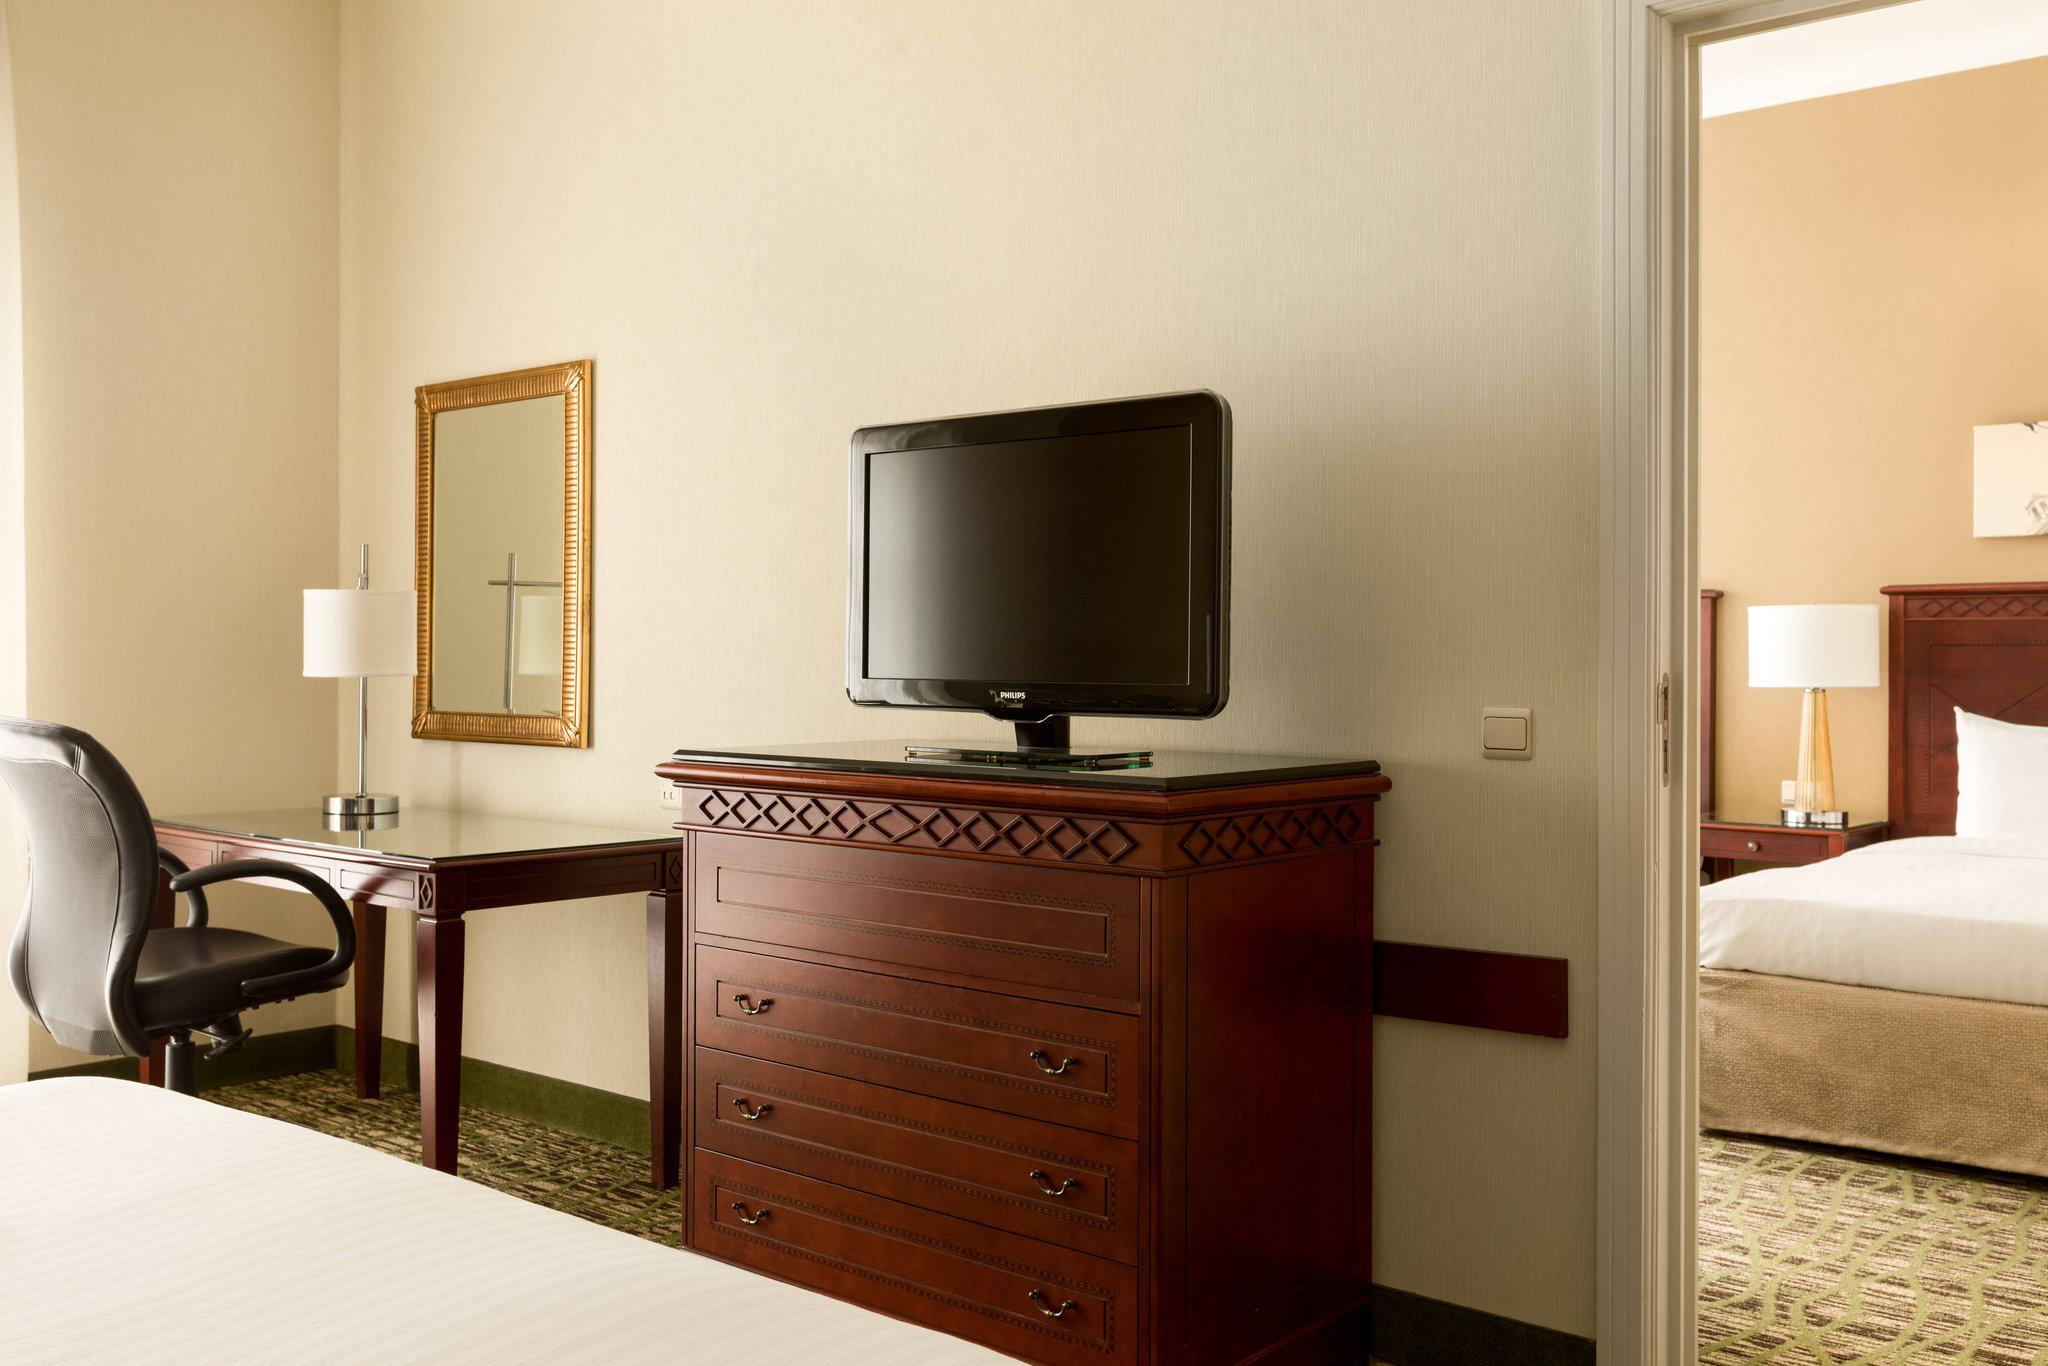 Brussels Marriott Hotel Grand Place